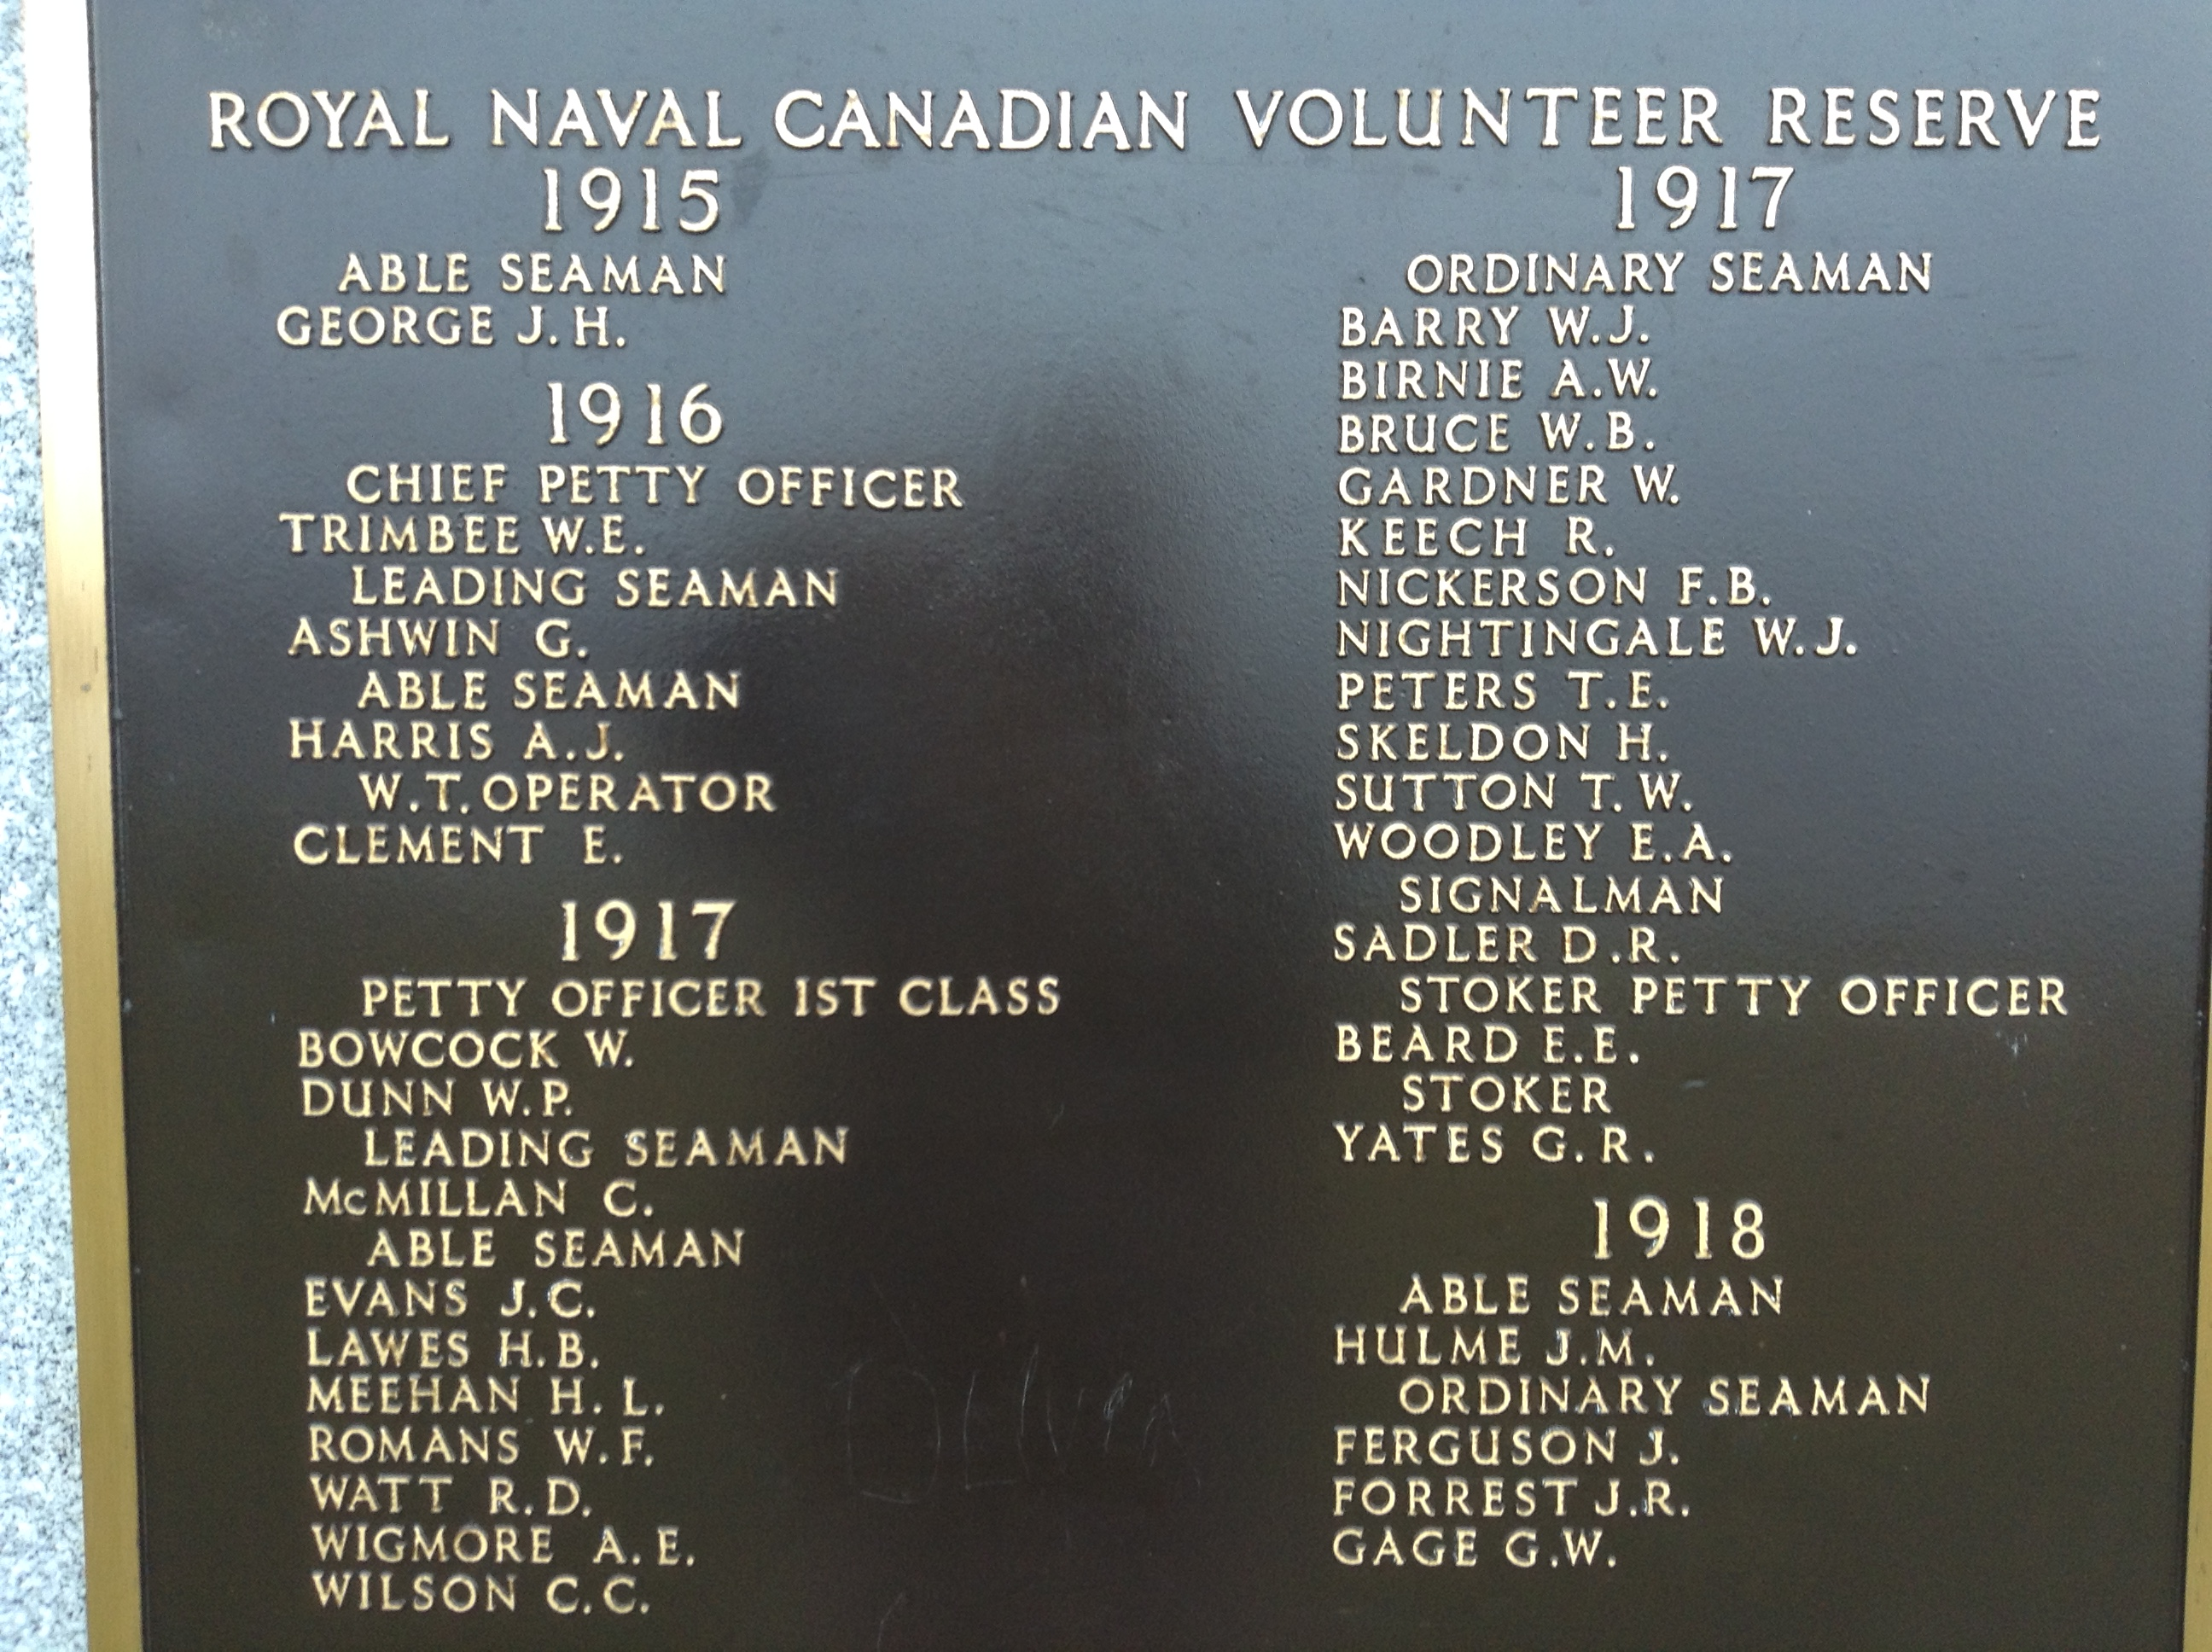 Memorial– The panel on the Halifax Memorial, at Point Pleasant in Halifax, Nova Scotia, Canada, on which Carl Cecil Wilson's name is inscribed.